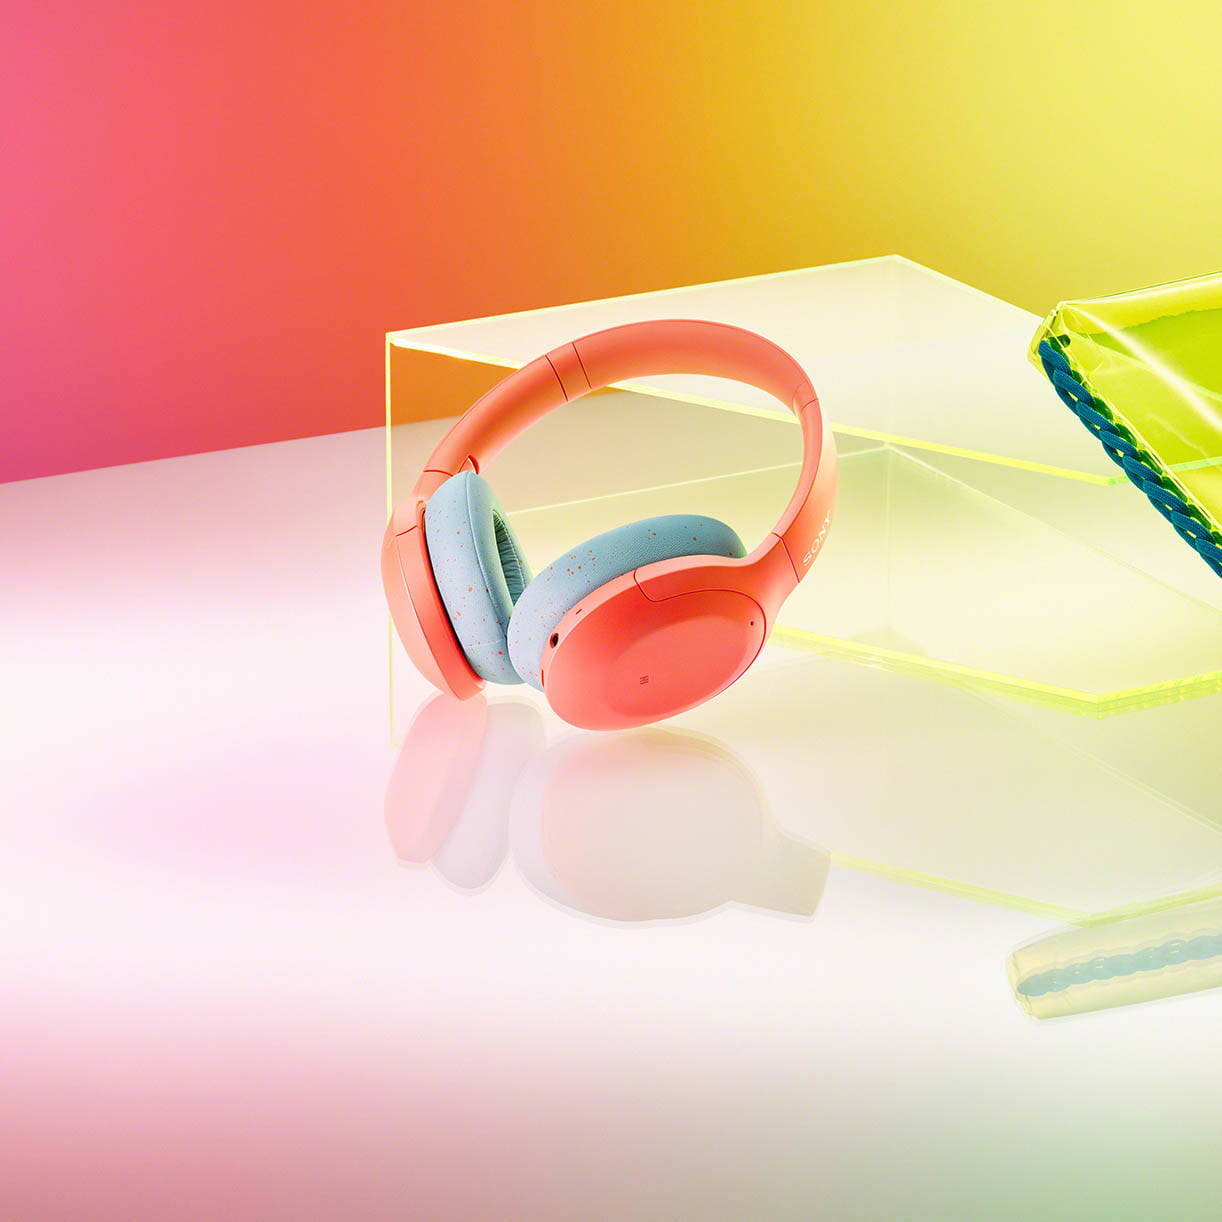 Sony's colorful, retro headphones are a perfect match for its funky new Walkman